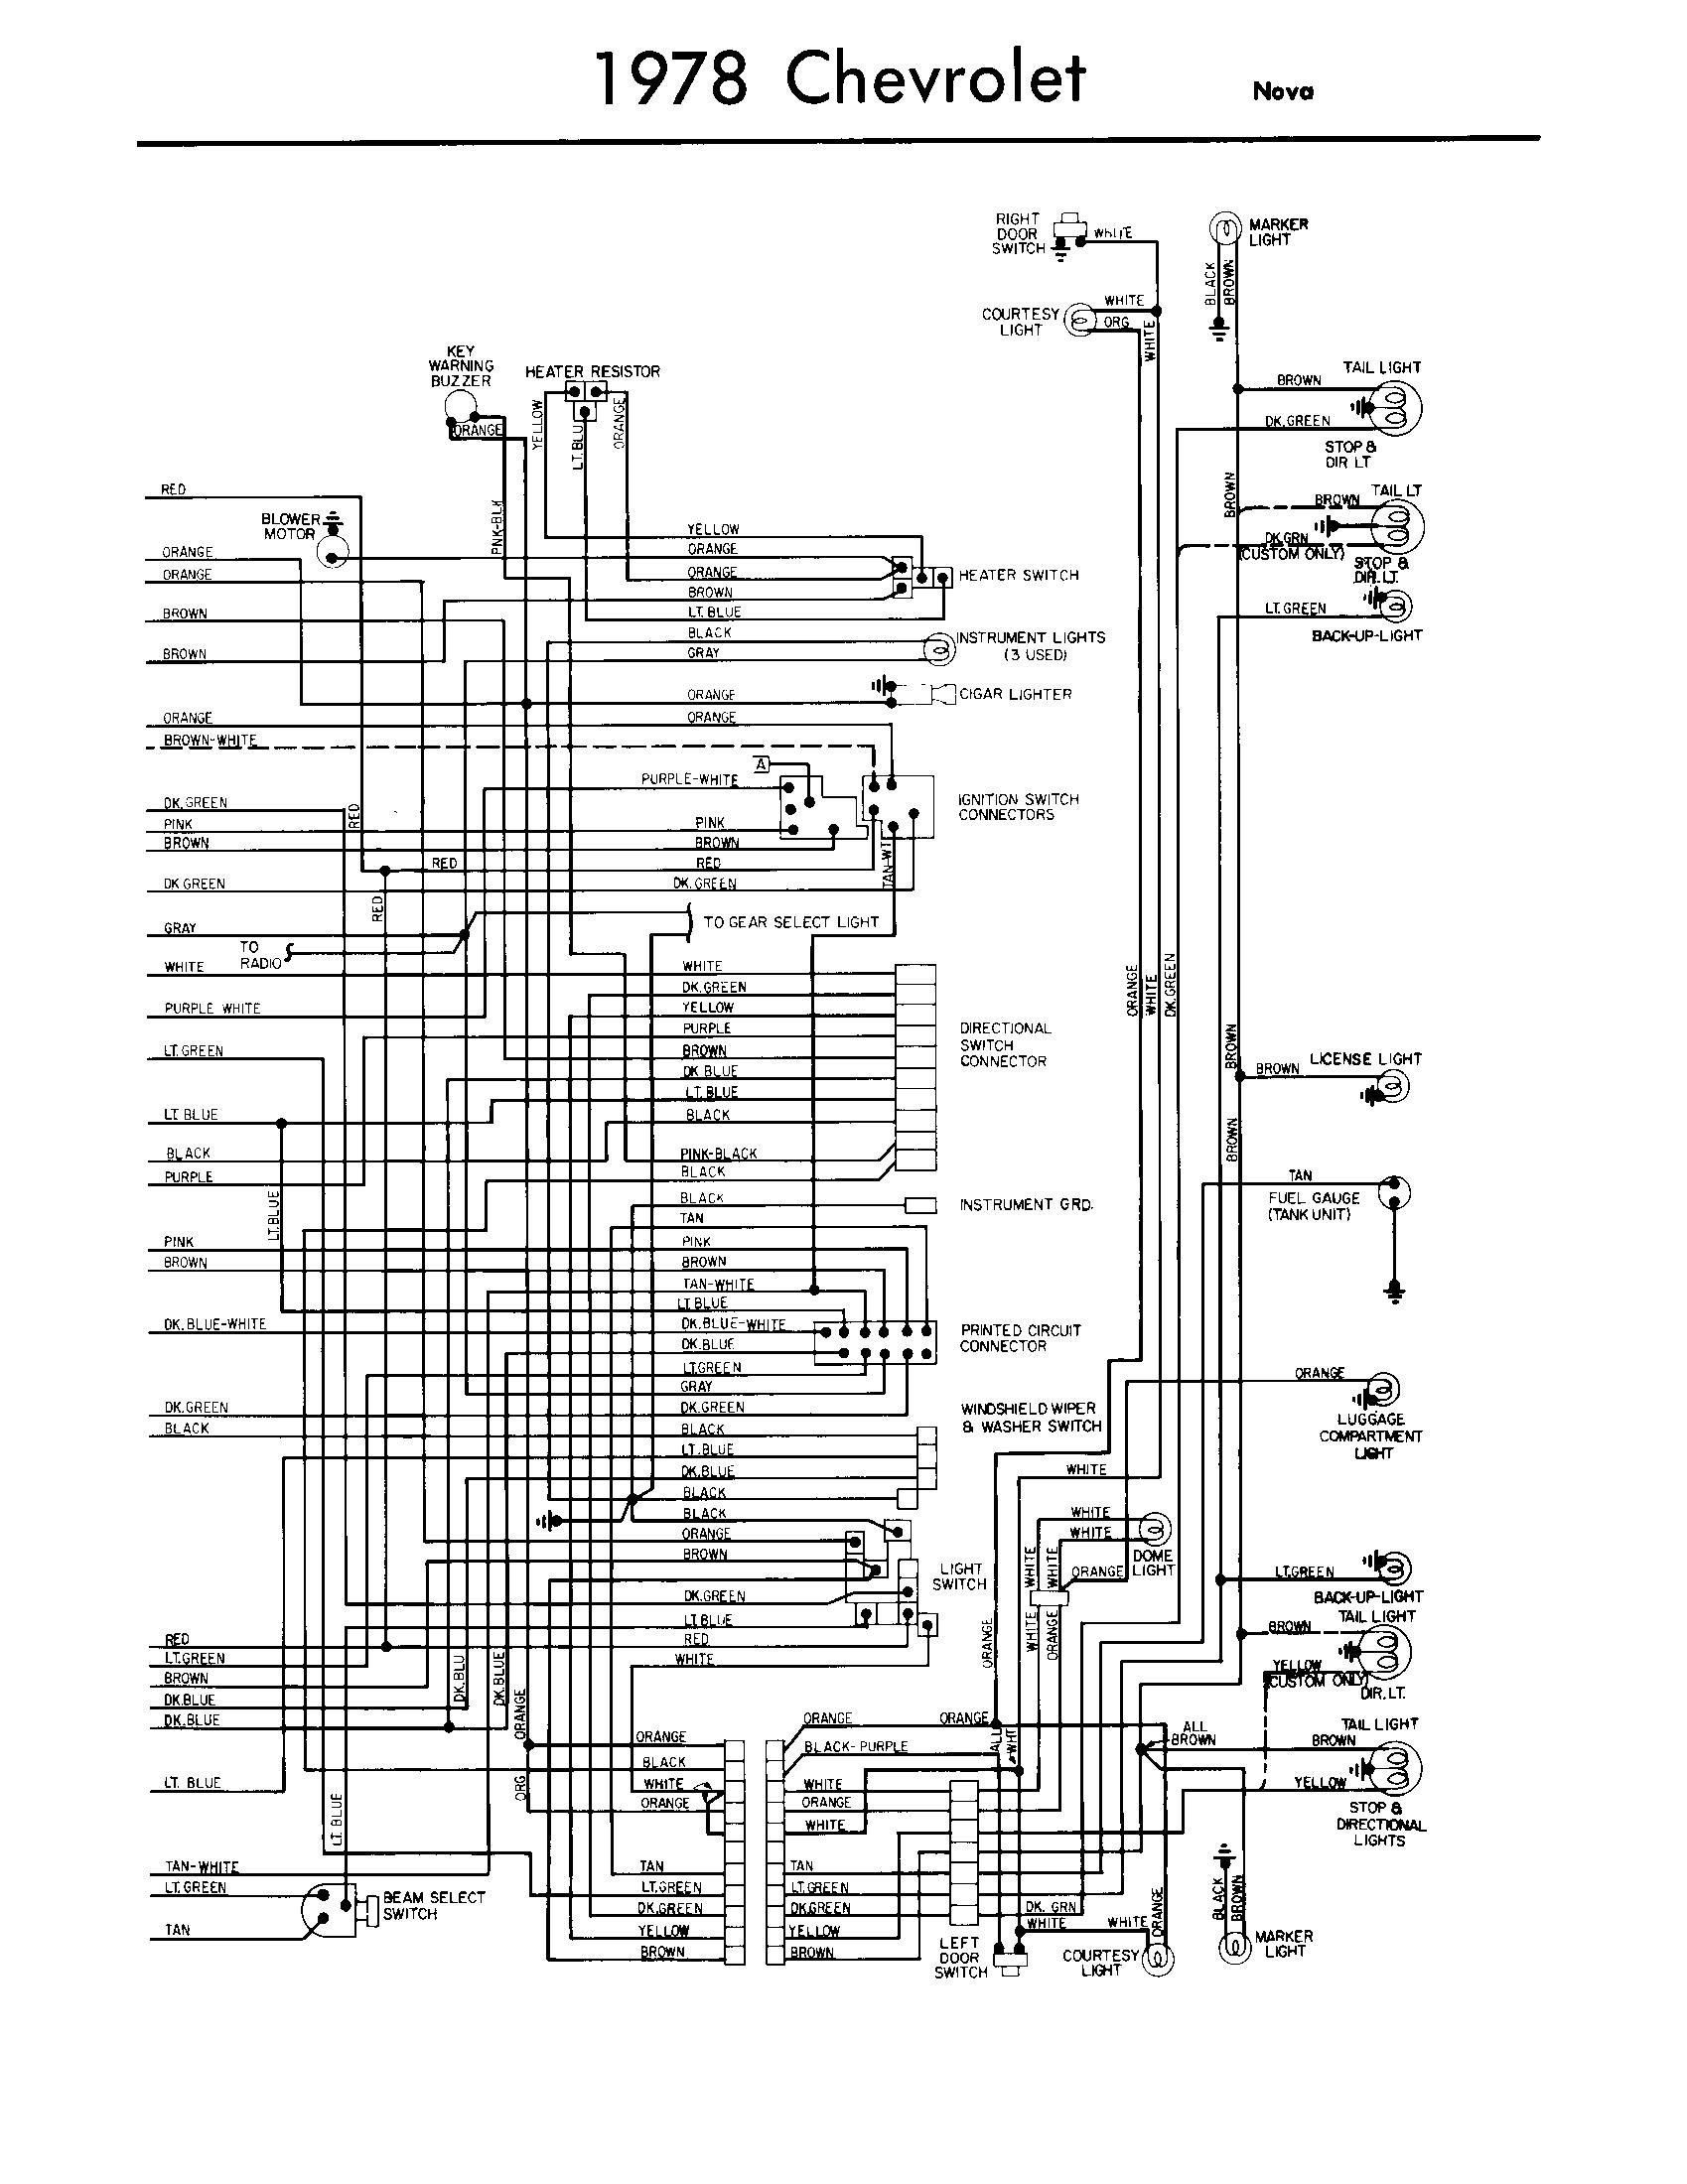 wiring diagram for 1979 corvette - wiring diagram system star-locate-a -  star-locate-a.ediliadesign.it  ediliadesign.it